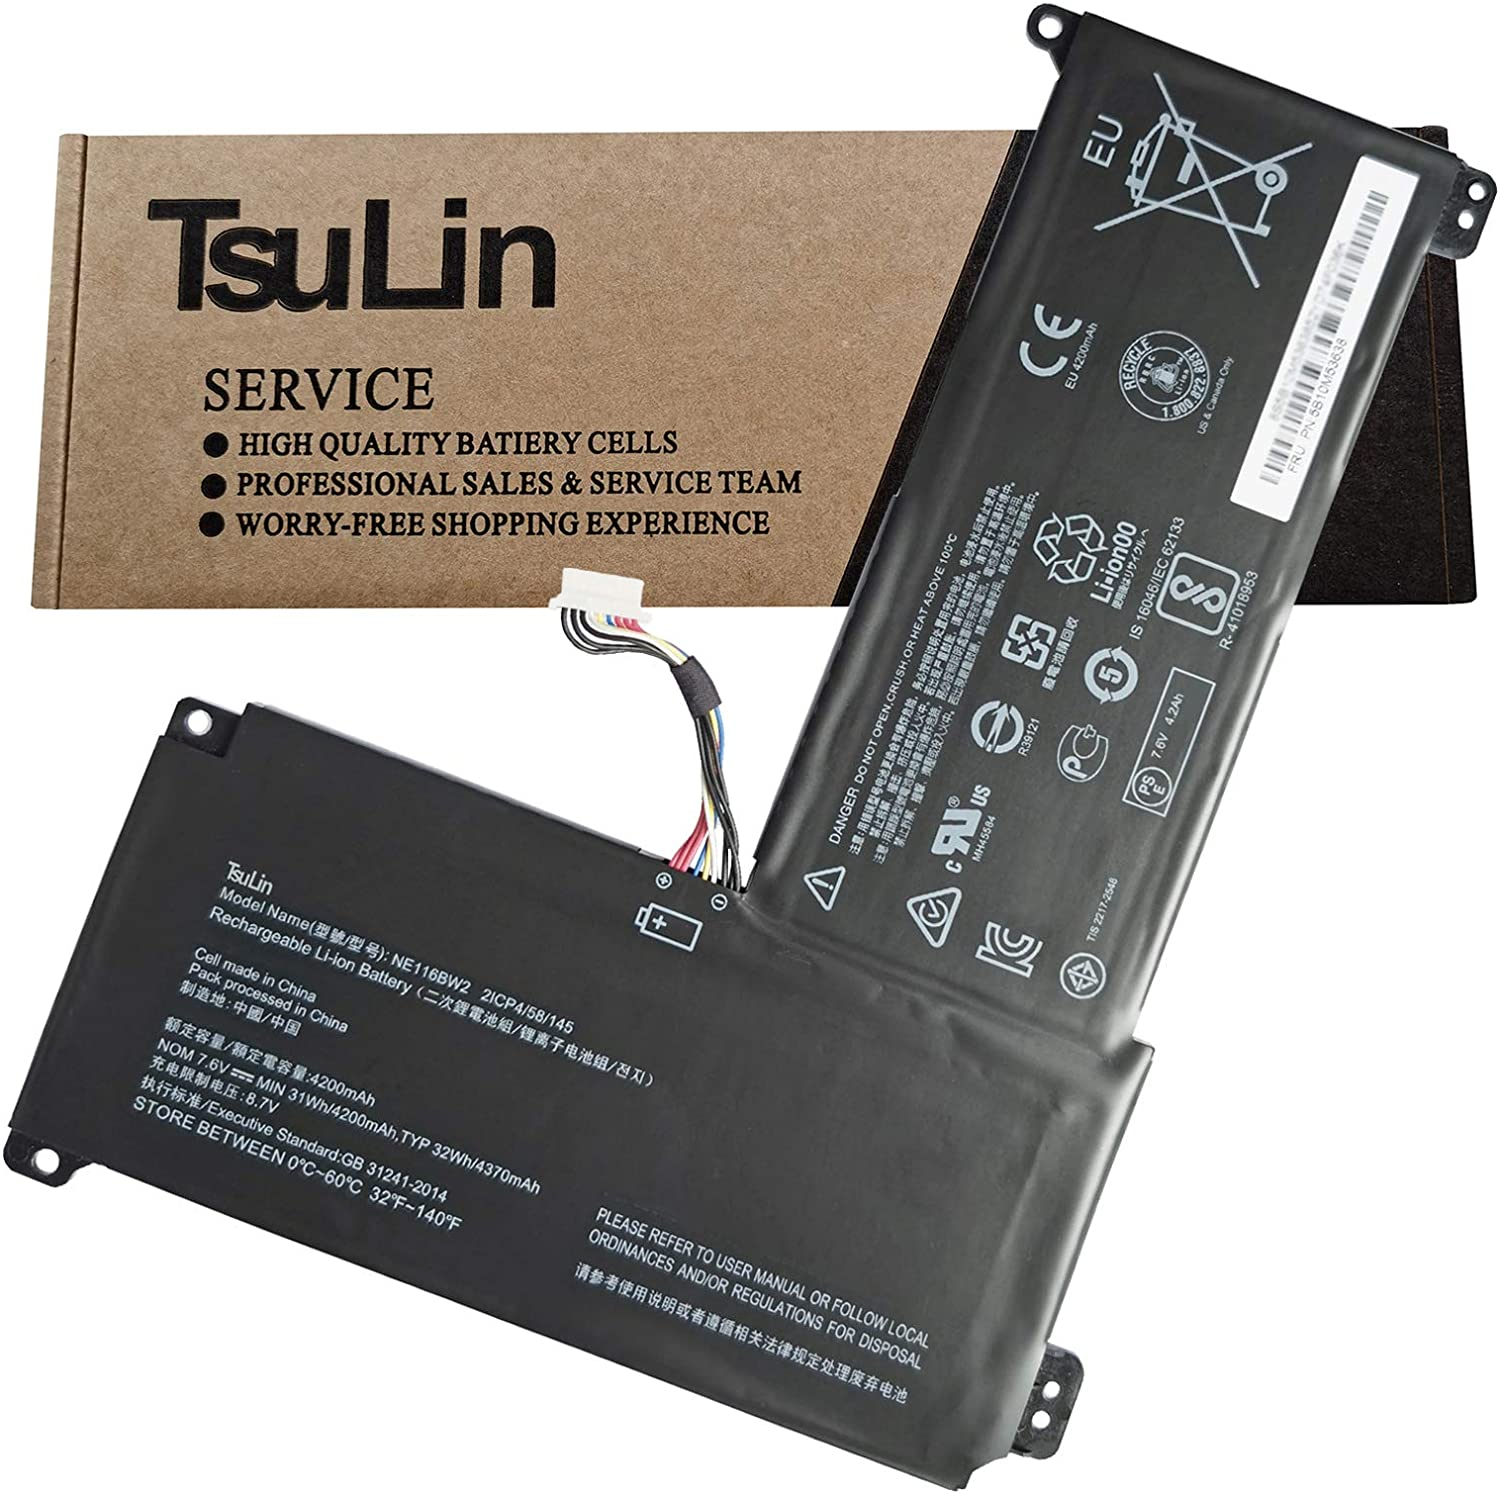 TsuLin Fashionable NE116BW2 Laptop Battery Replacement 11 Lenovo Ranking TOP16 IdeaPad for